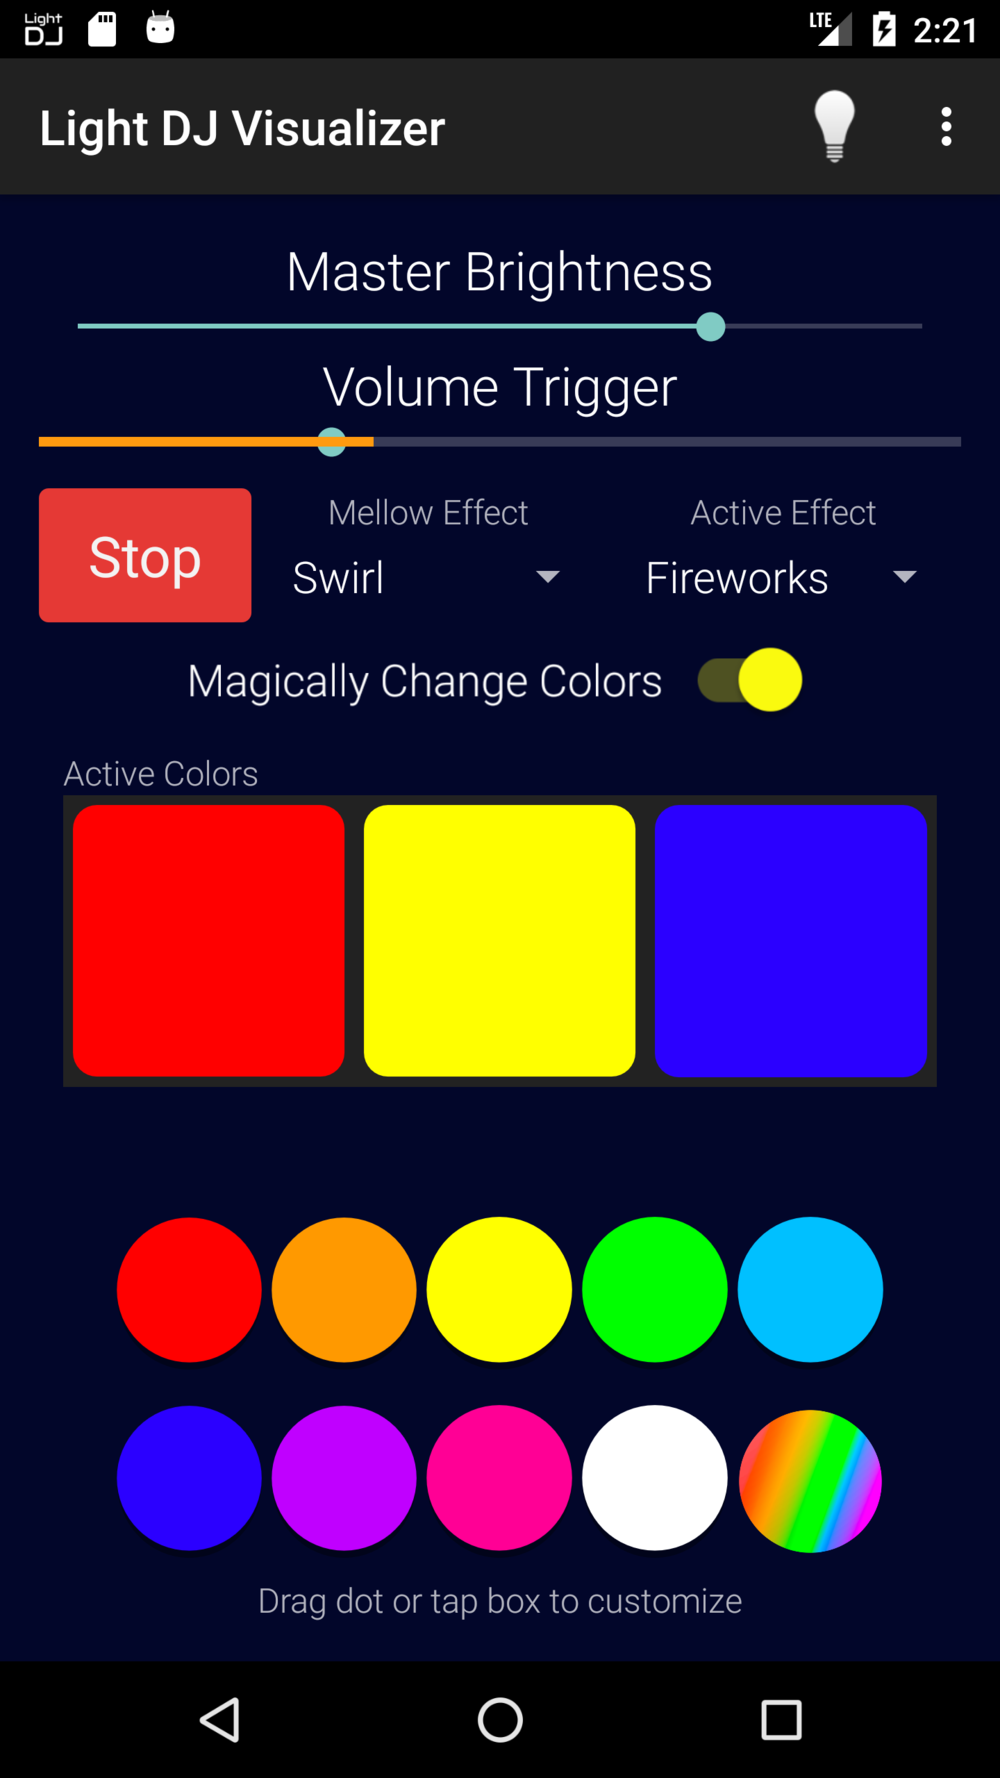 Pick your own custom colors by tapping on one of the Active Colors.